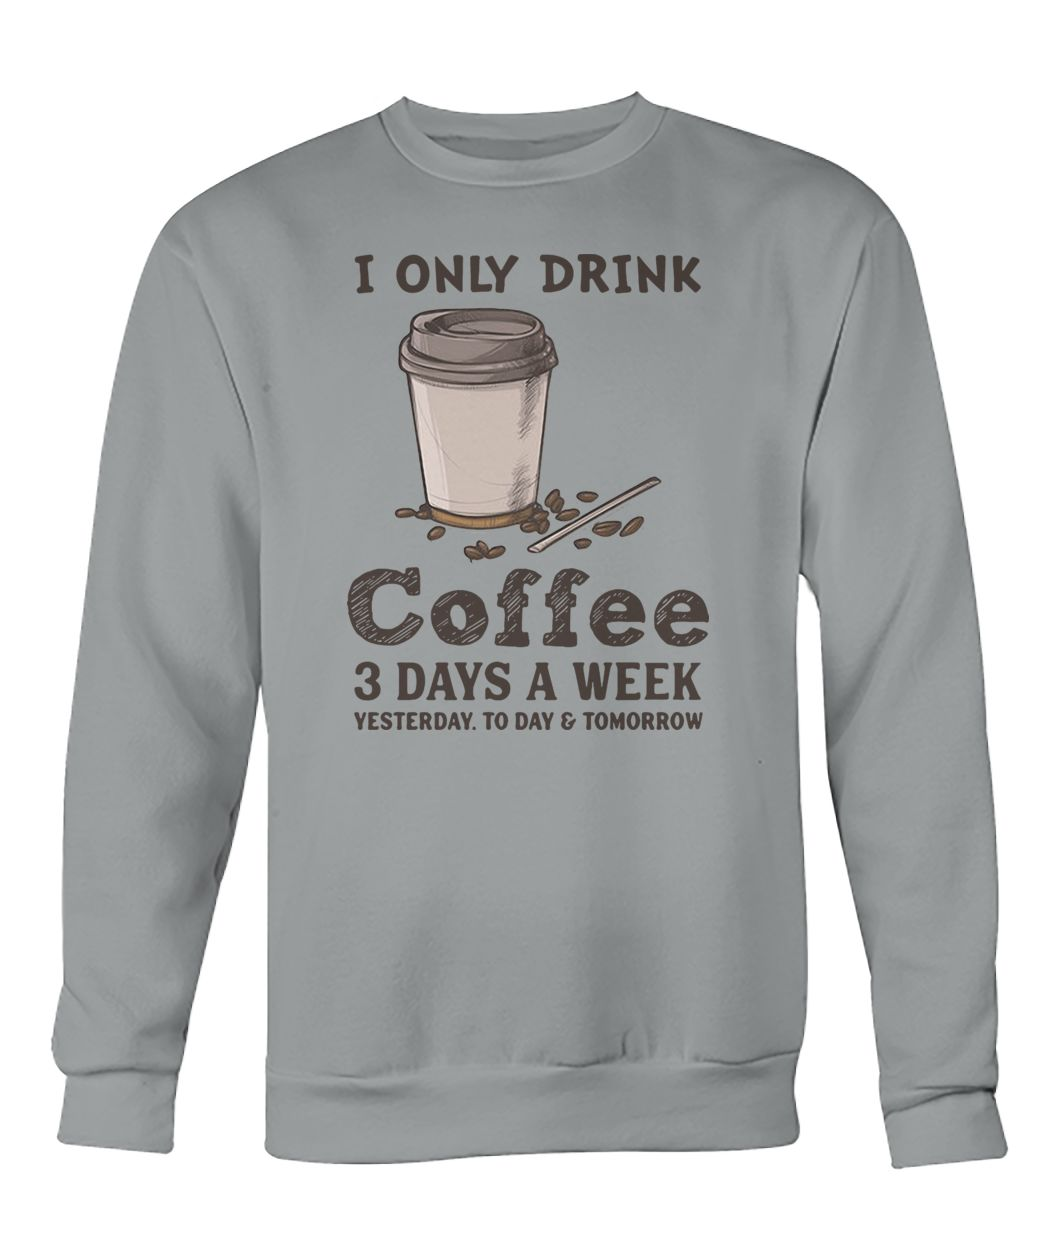 I only drink coffee 3 days a week yesterday today and tomorrow crew neck sweatshirt